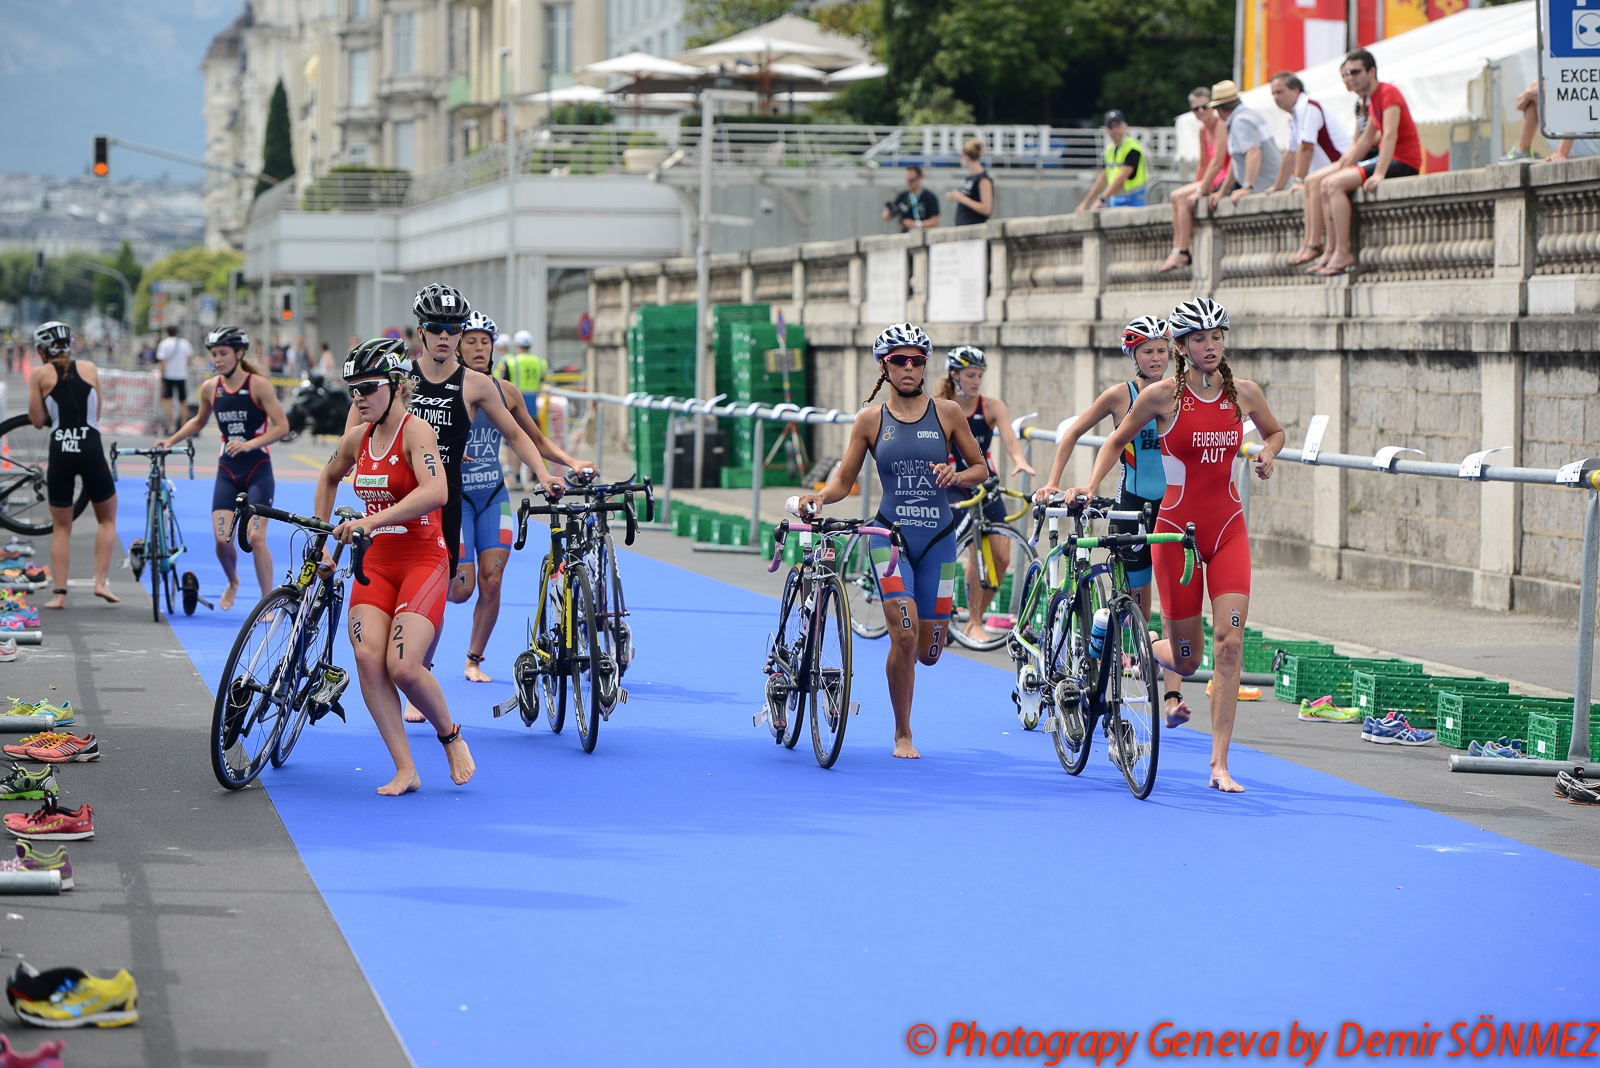 26 Triathlon International de Genève-4216.jpg